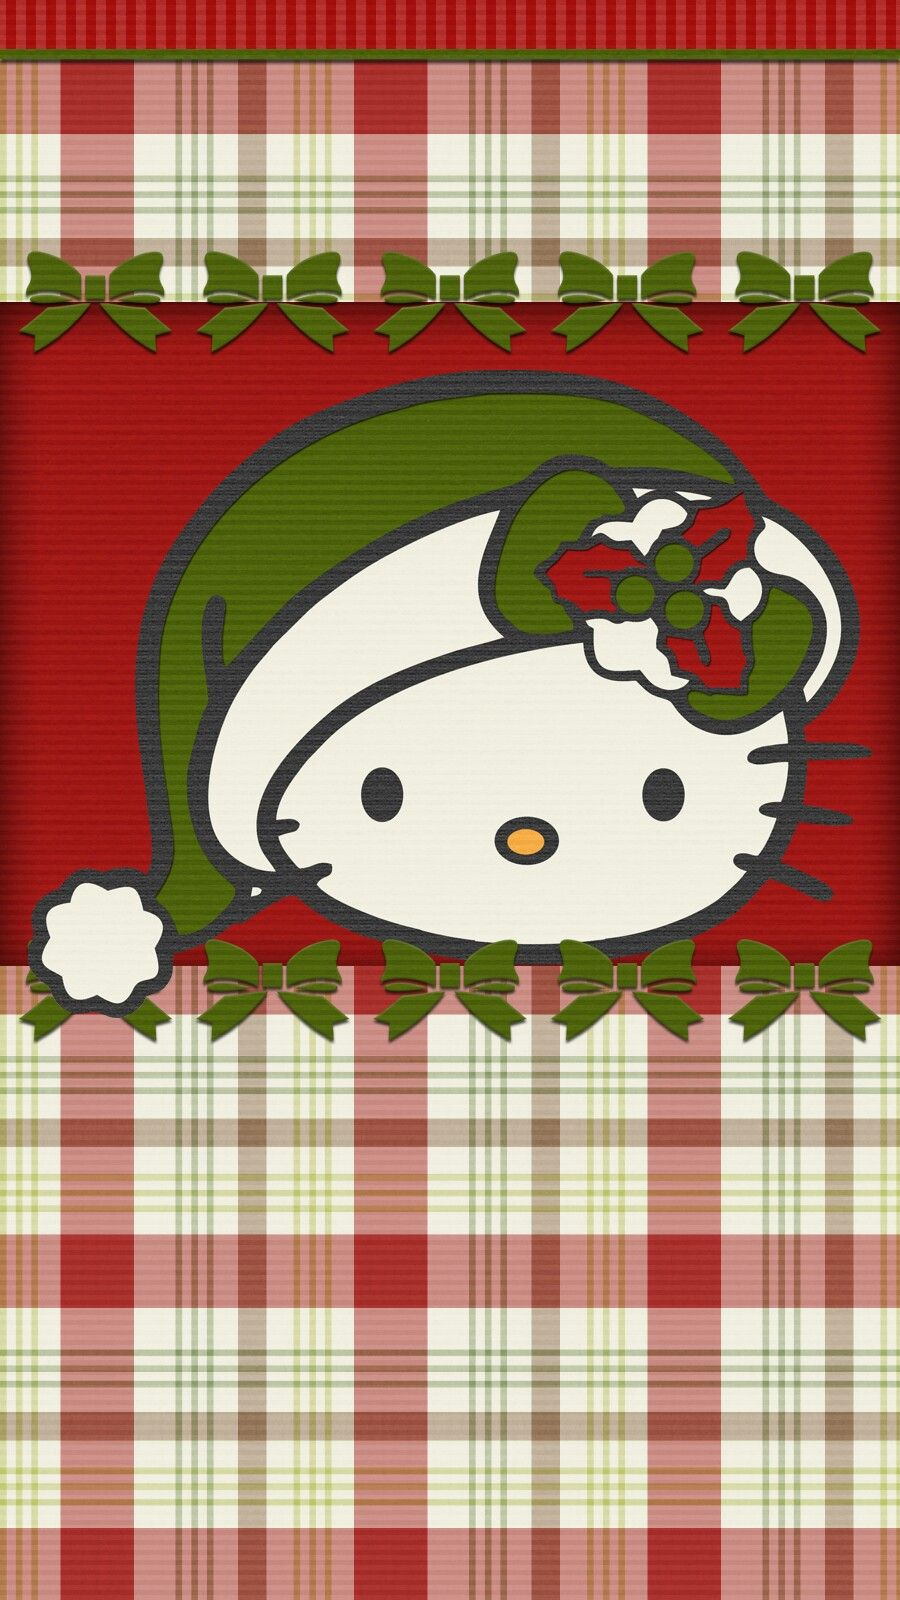 Must see Wallpaper Hello Kitty Android - e797aebb479d9ba311c96ee773734d01  Snapshot_792966.jpg